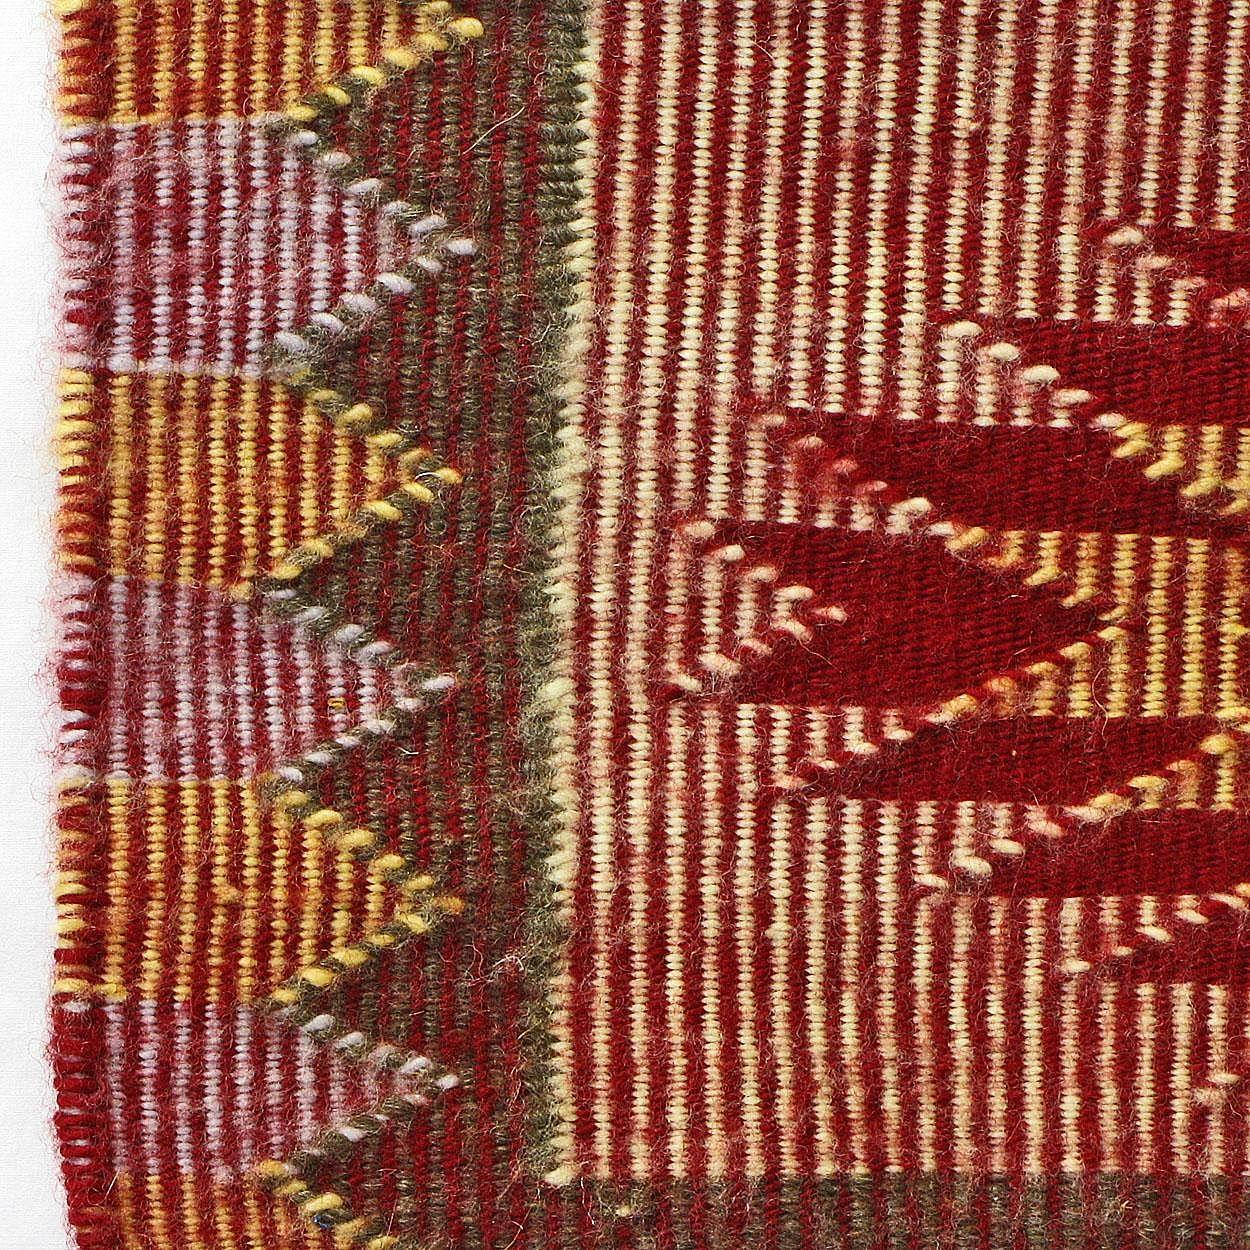 Raised Outline Or Twill Navajo Weaving Rug Hand Woven